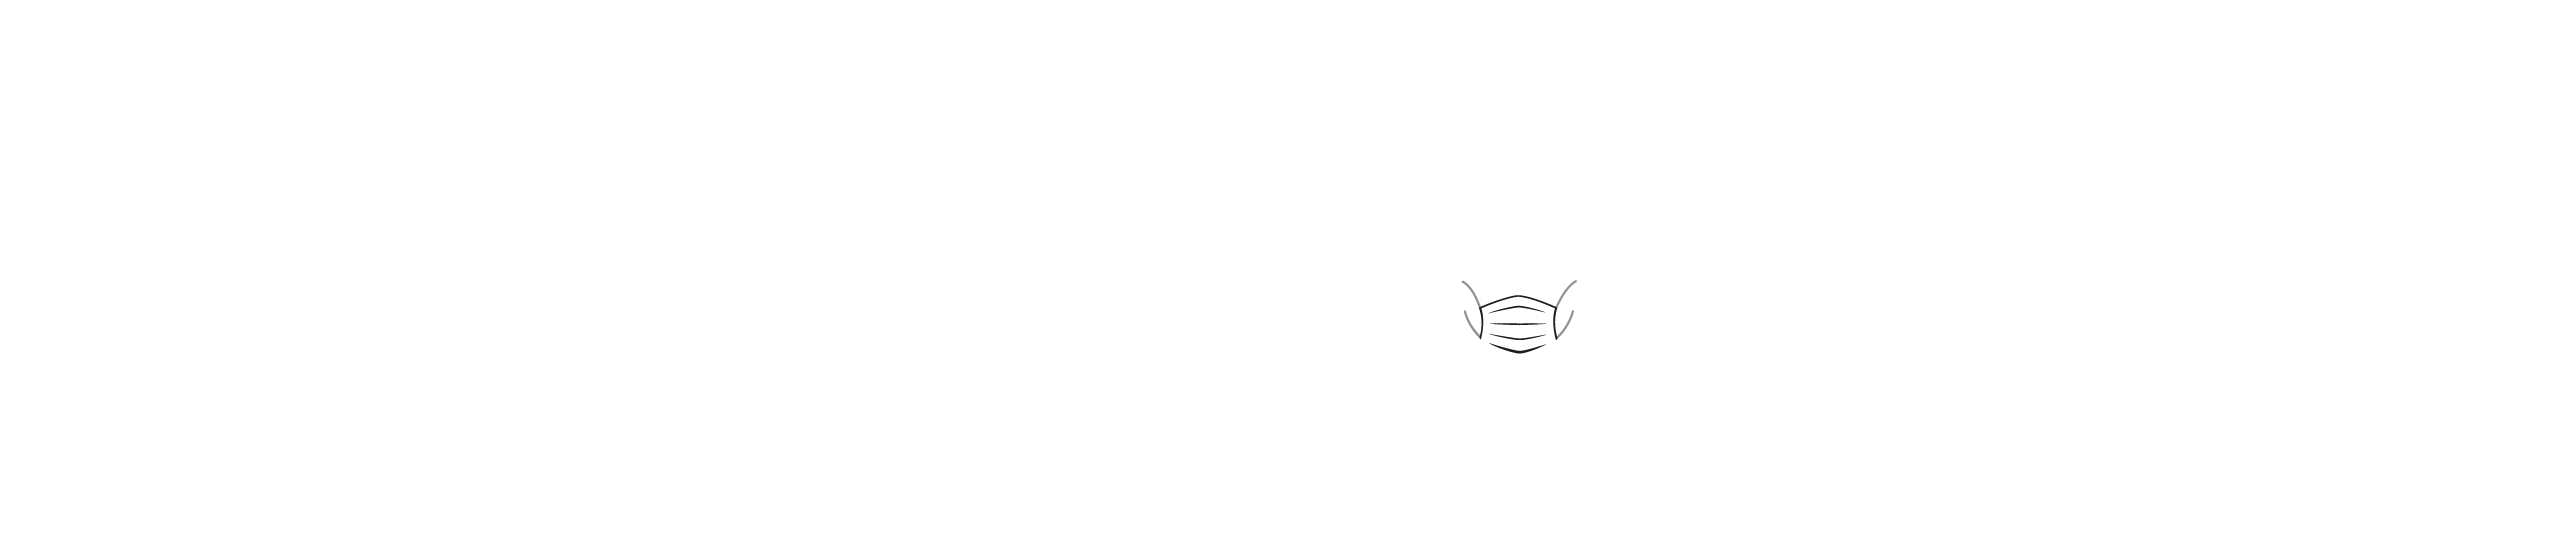 eConnections